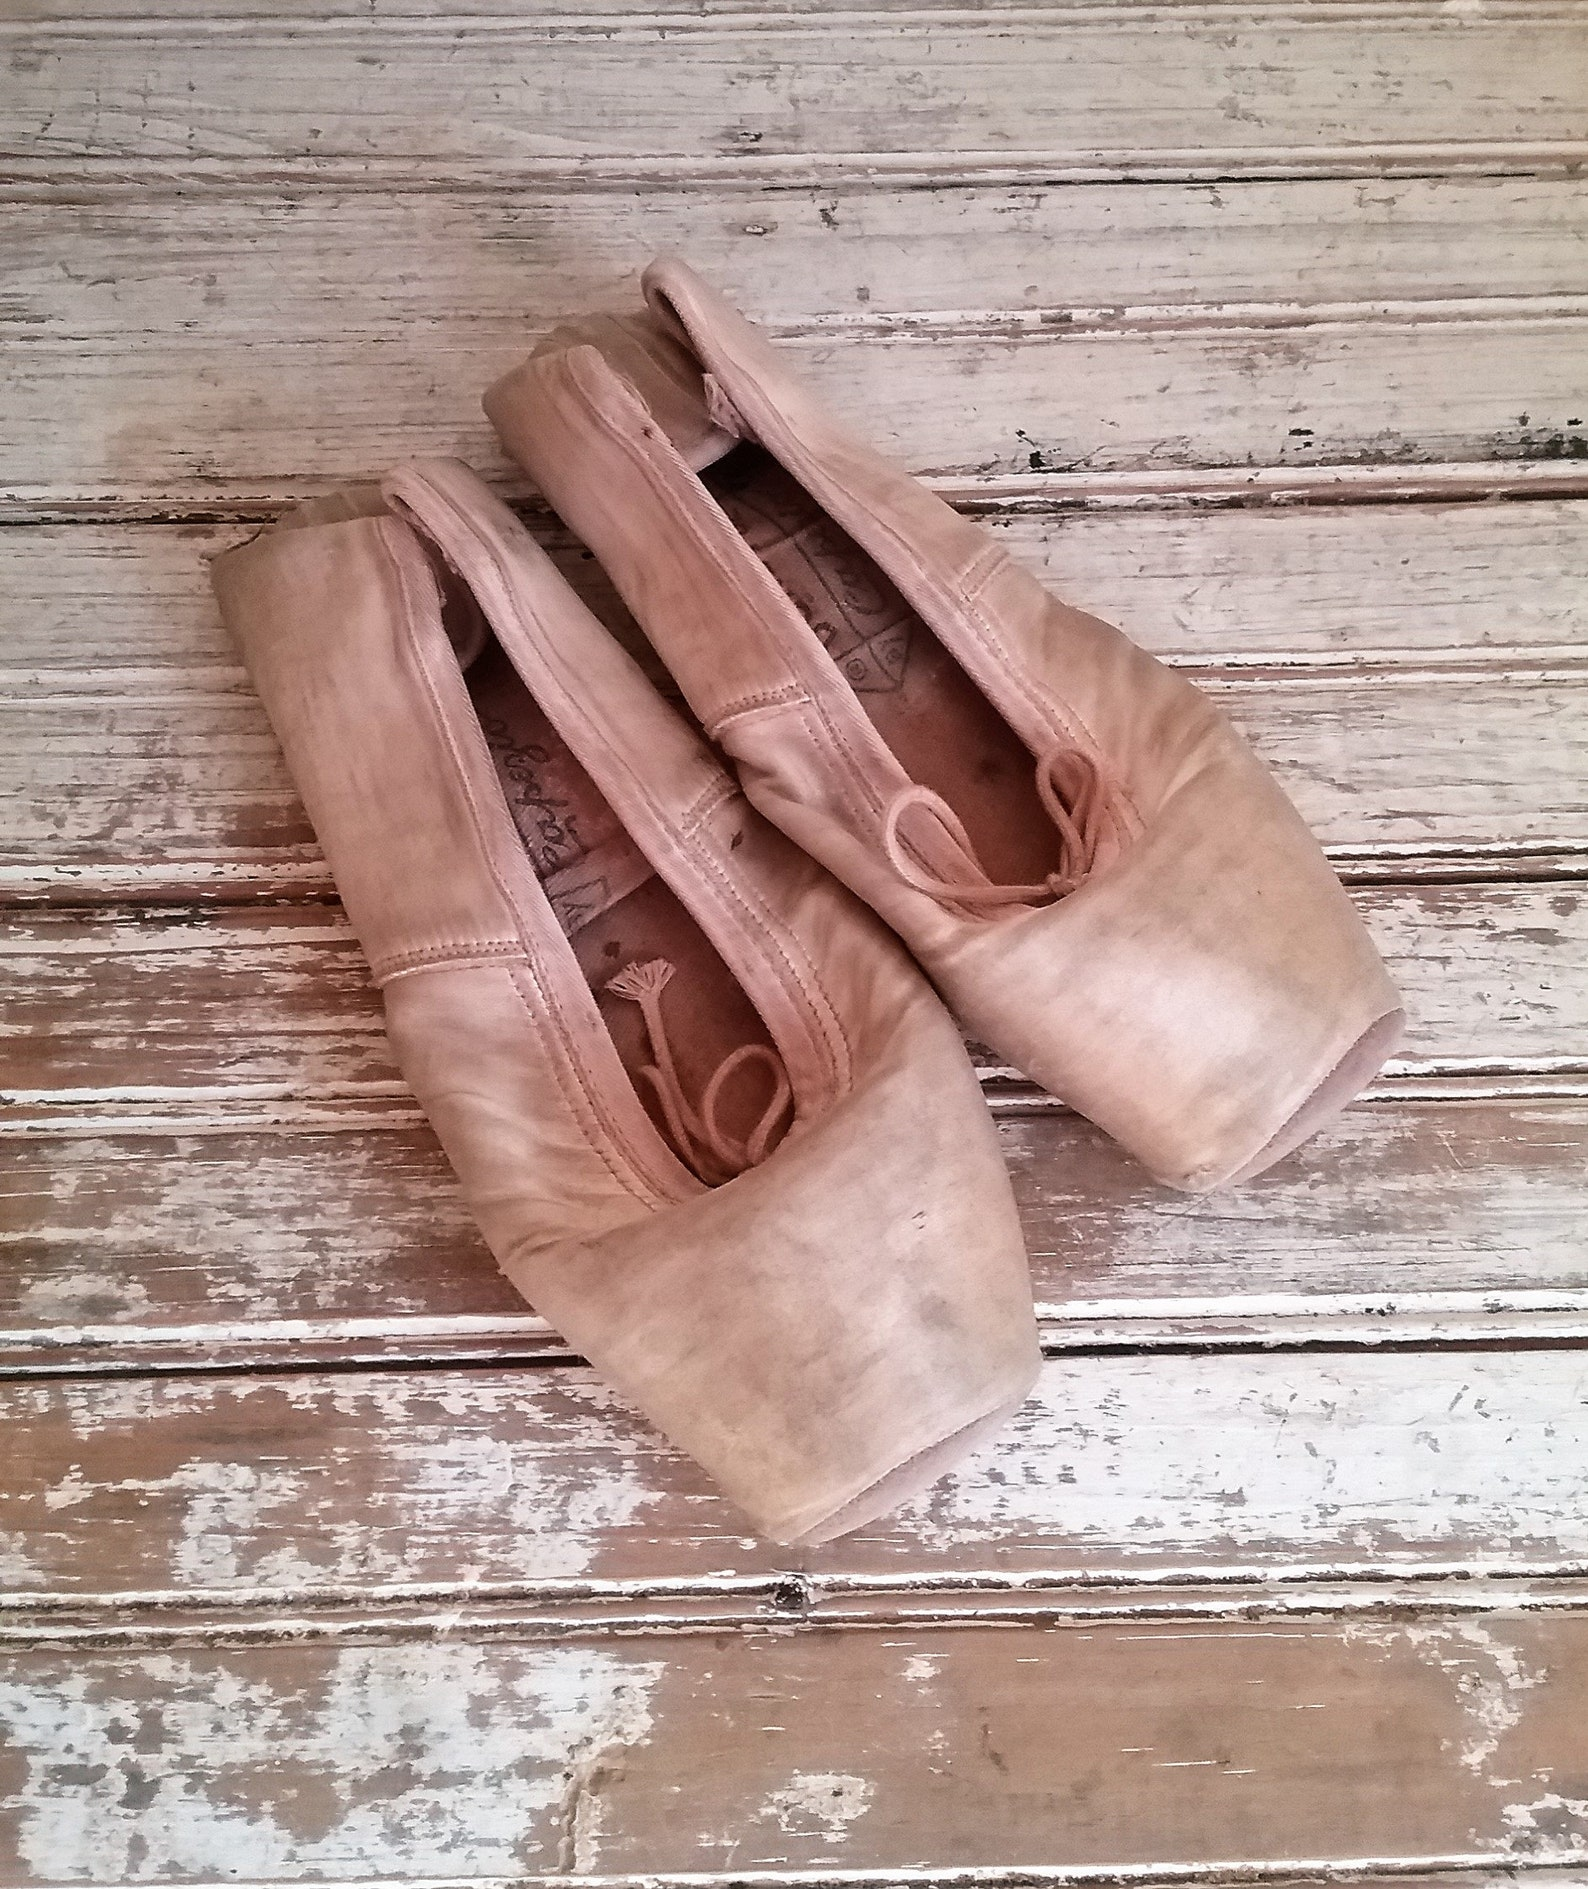 vintage ballet shoes, ballet slippers, pink vintage pointe shoes, vintage capezio ballet slippers shabby pink ballet slippers ho